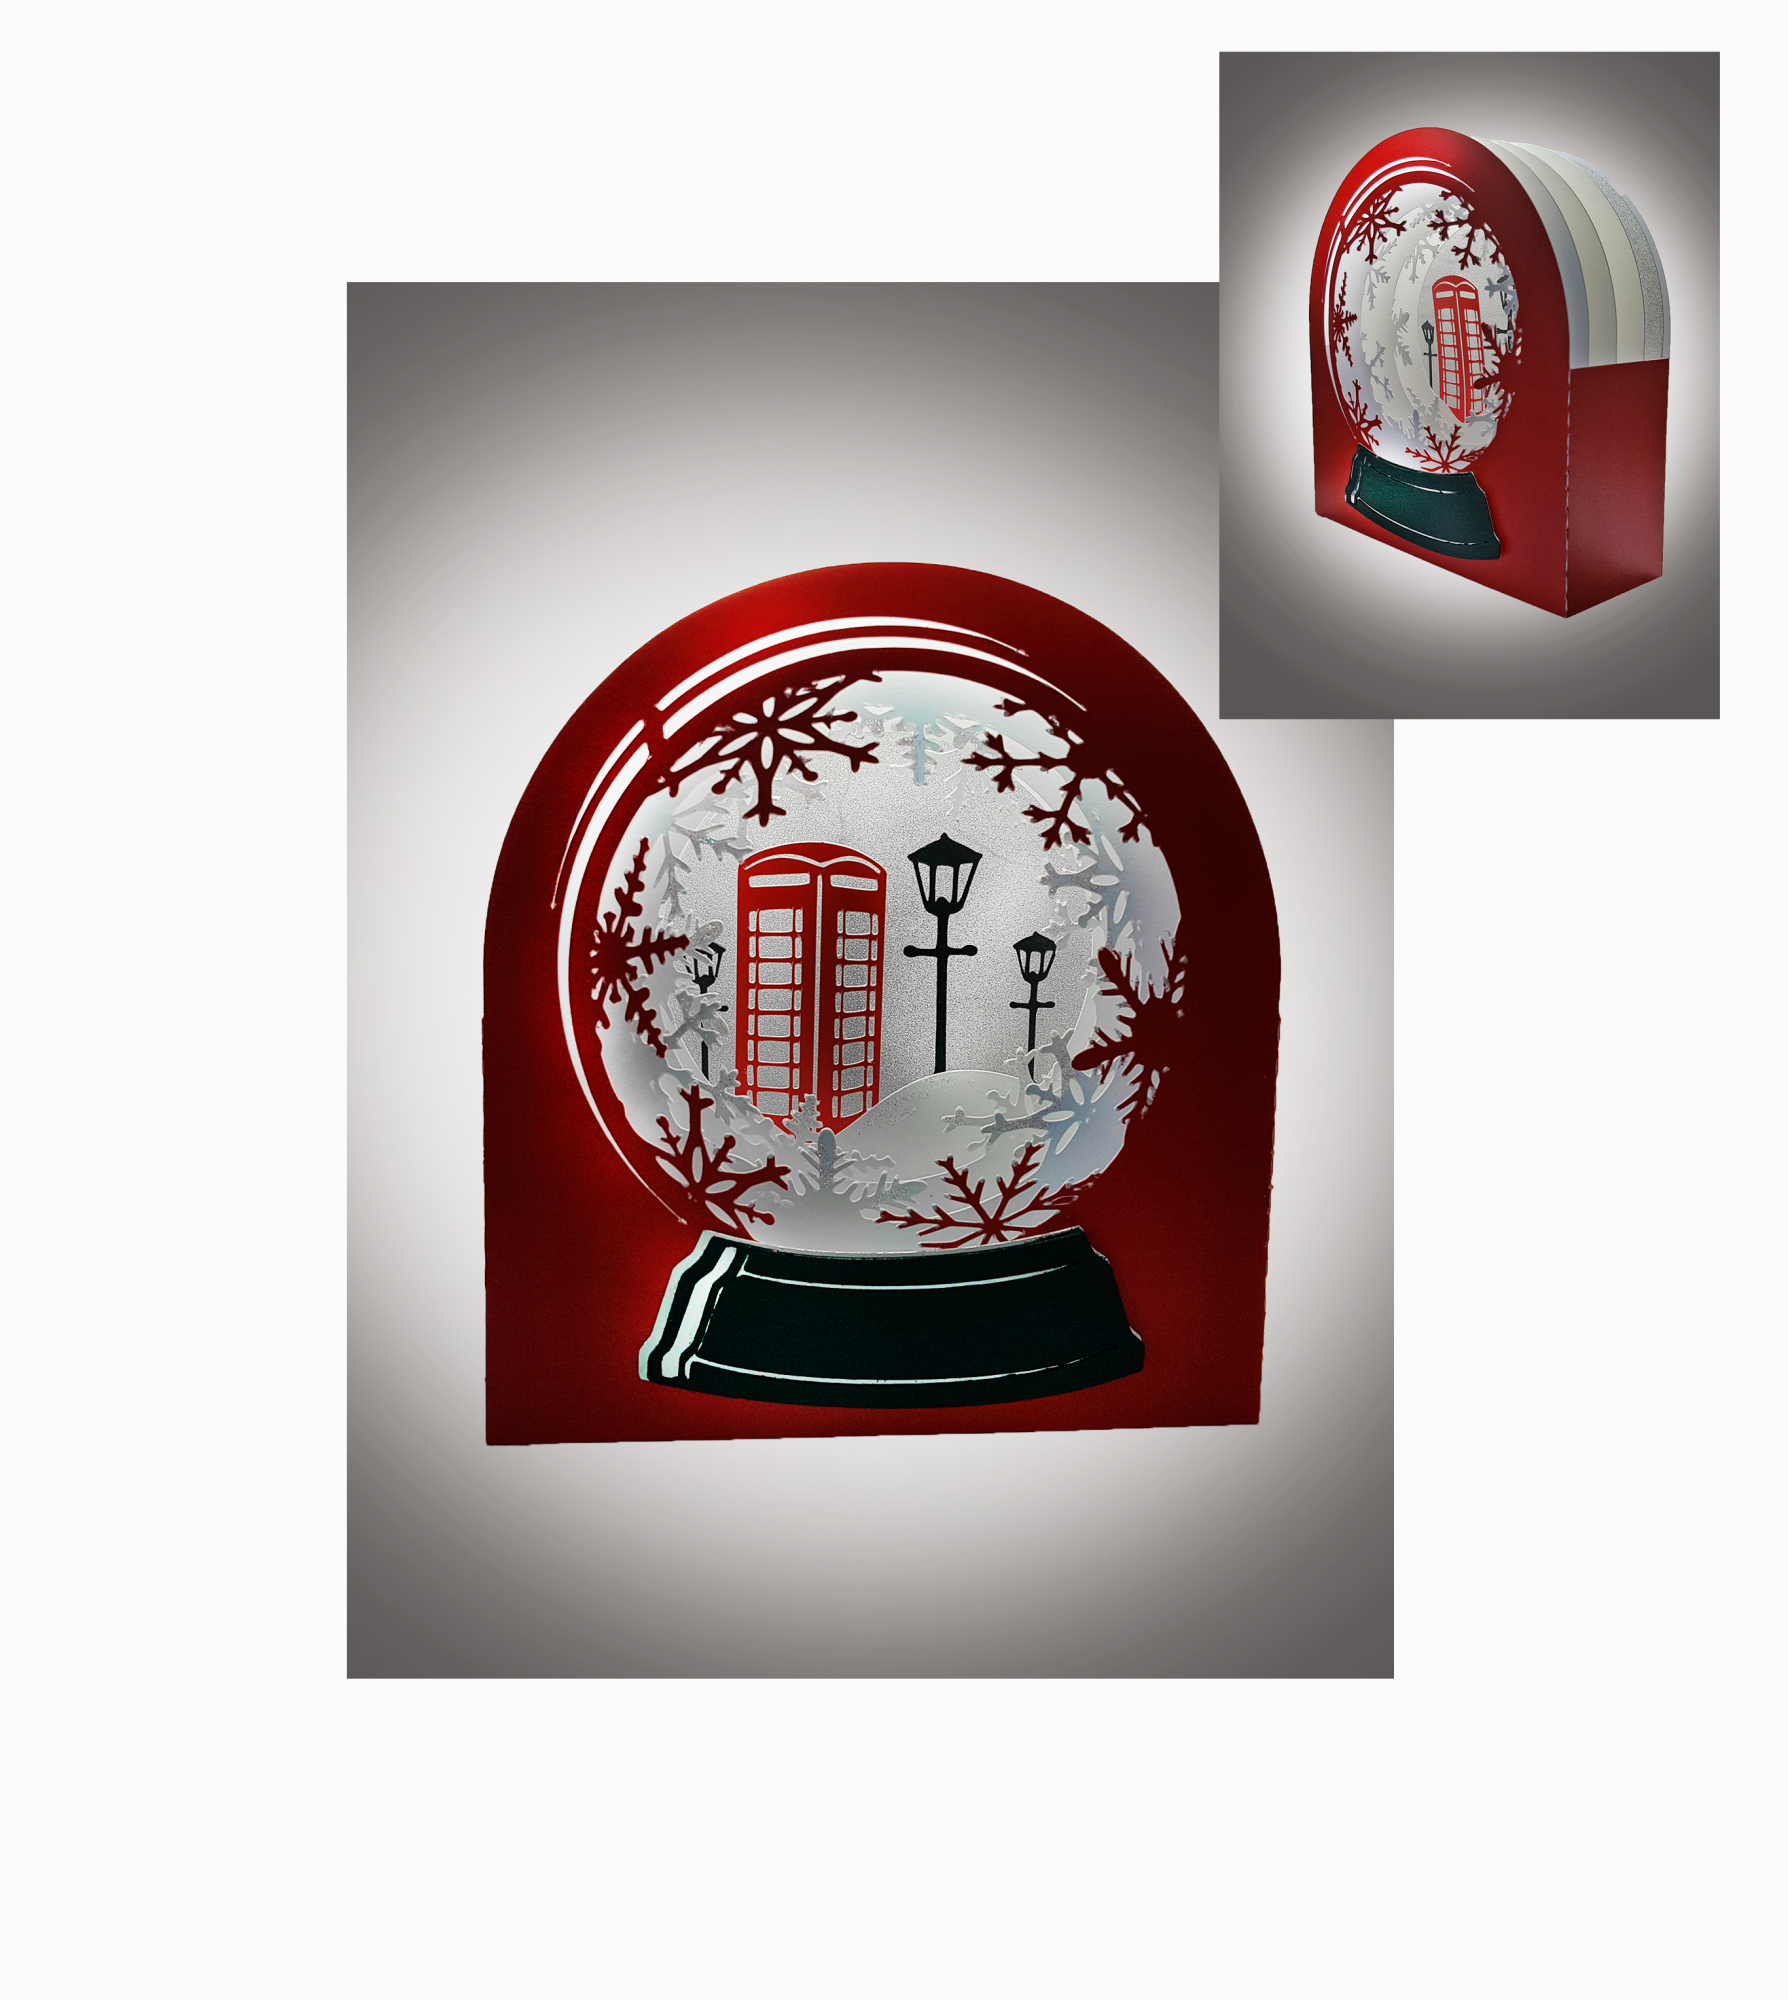 3D Snow Globe Classic Red Telephone Box greetings card example image 1